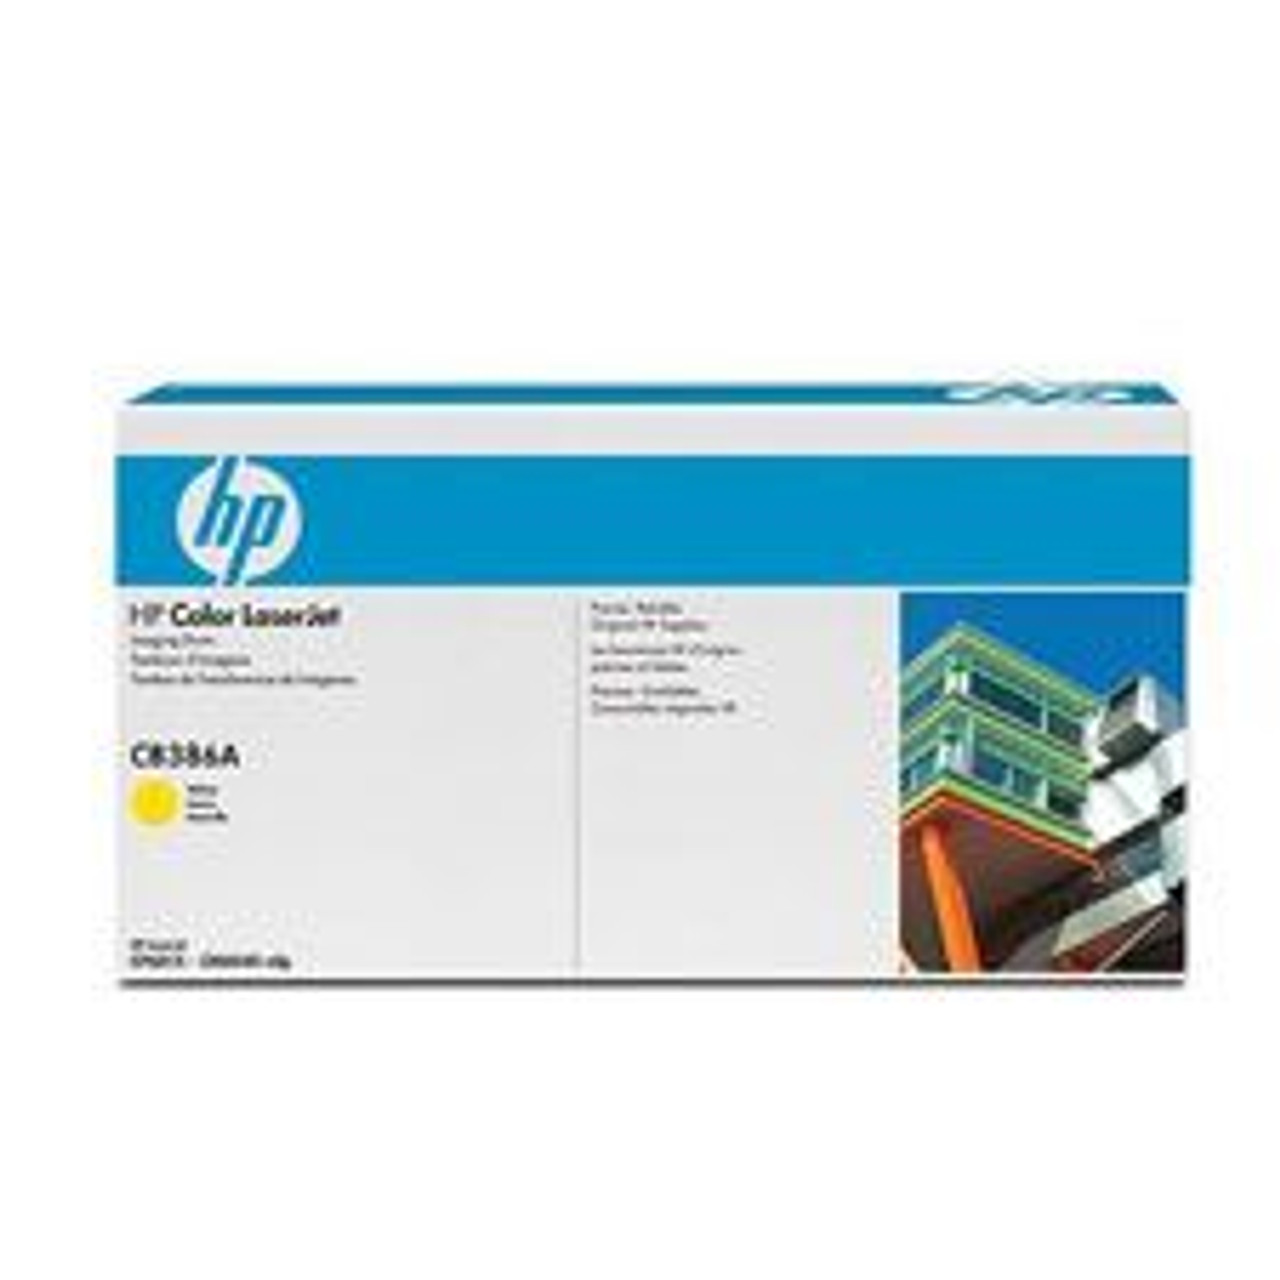 Image for HP Color LaserJet Yellow Imaging Drum (CB386A) CX Computer Superstore